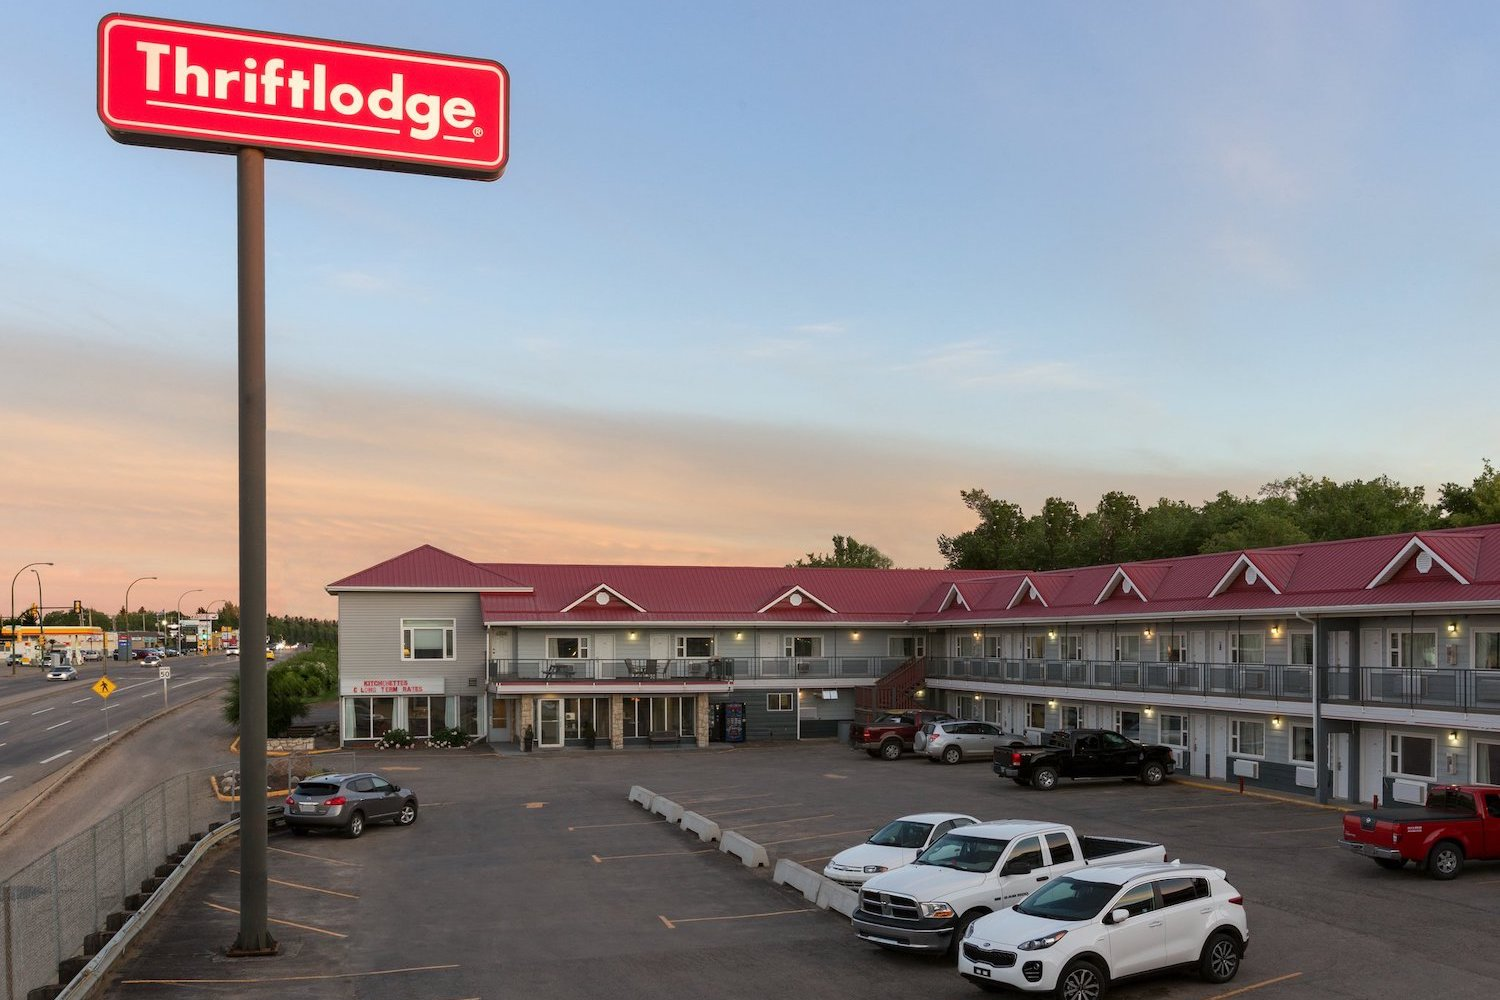 Travelodge/Thriftlodge